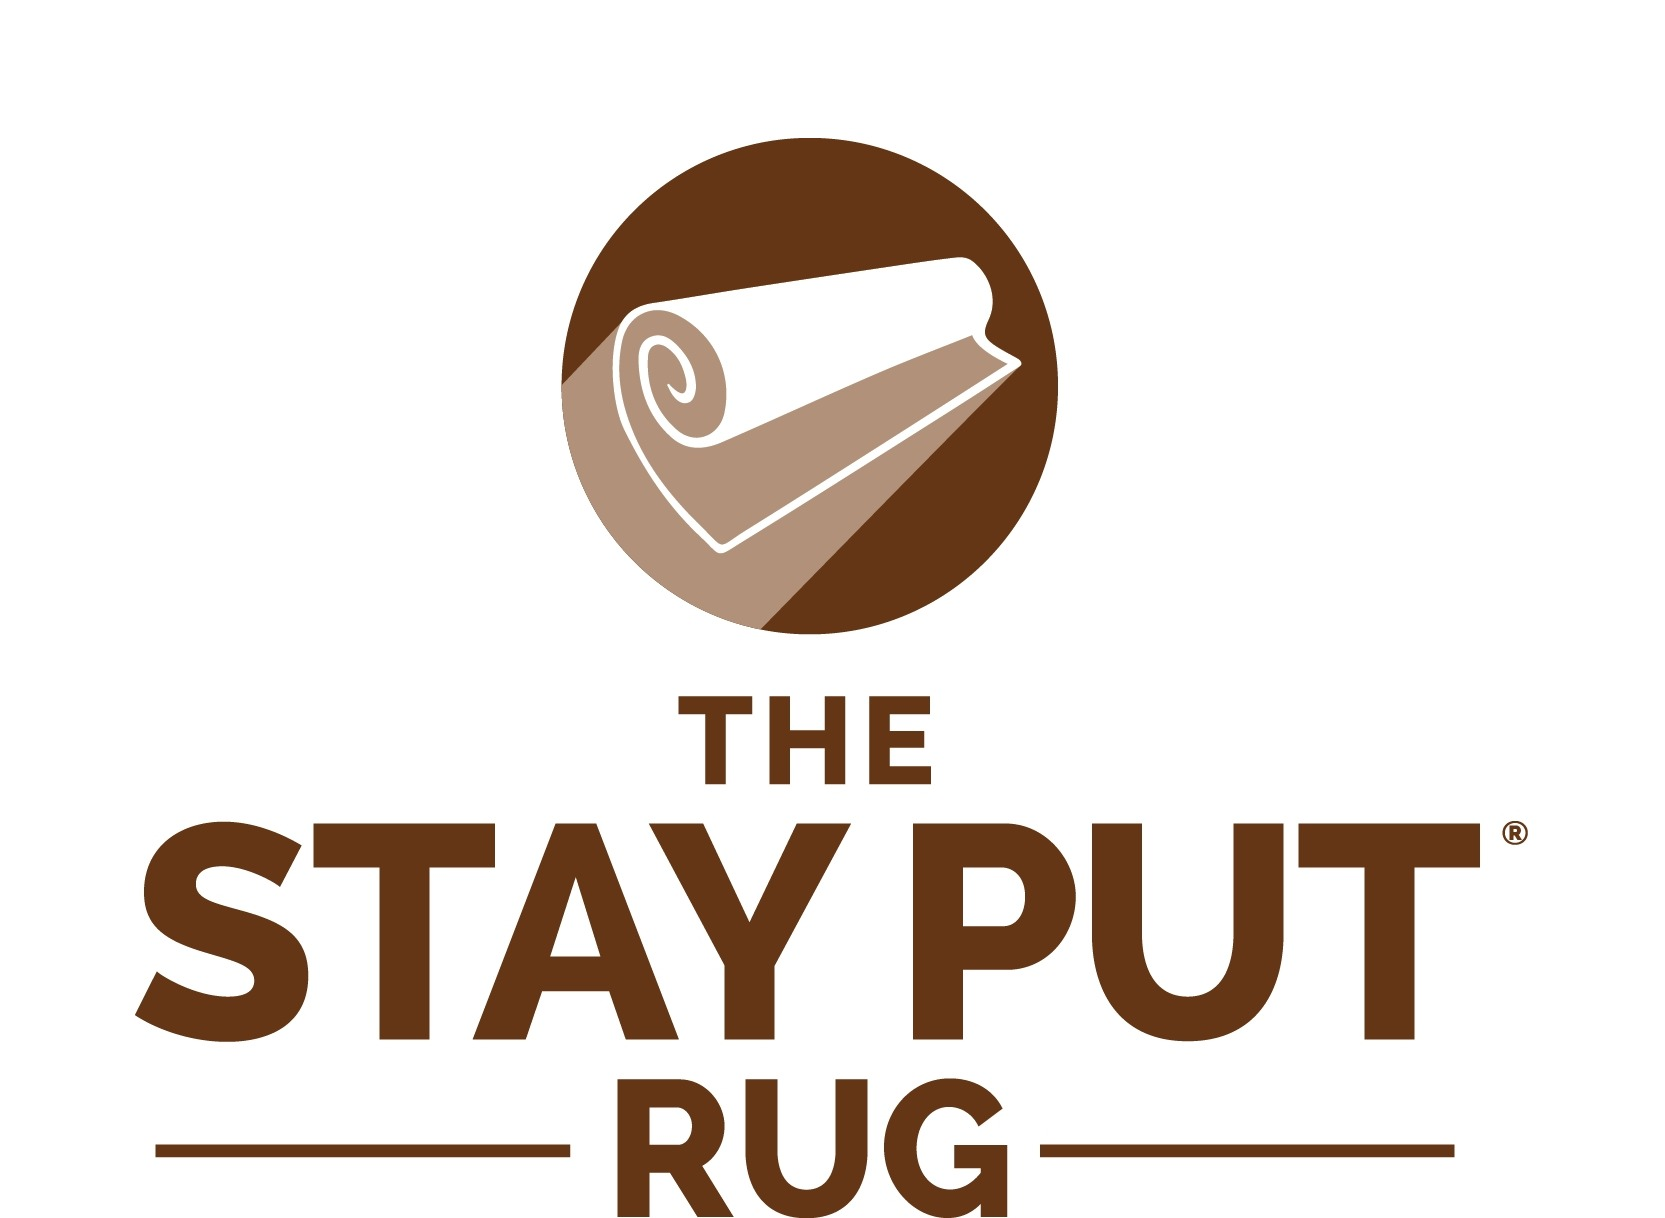 The Stay Put Rug coupon code